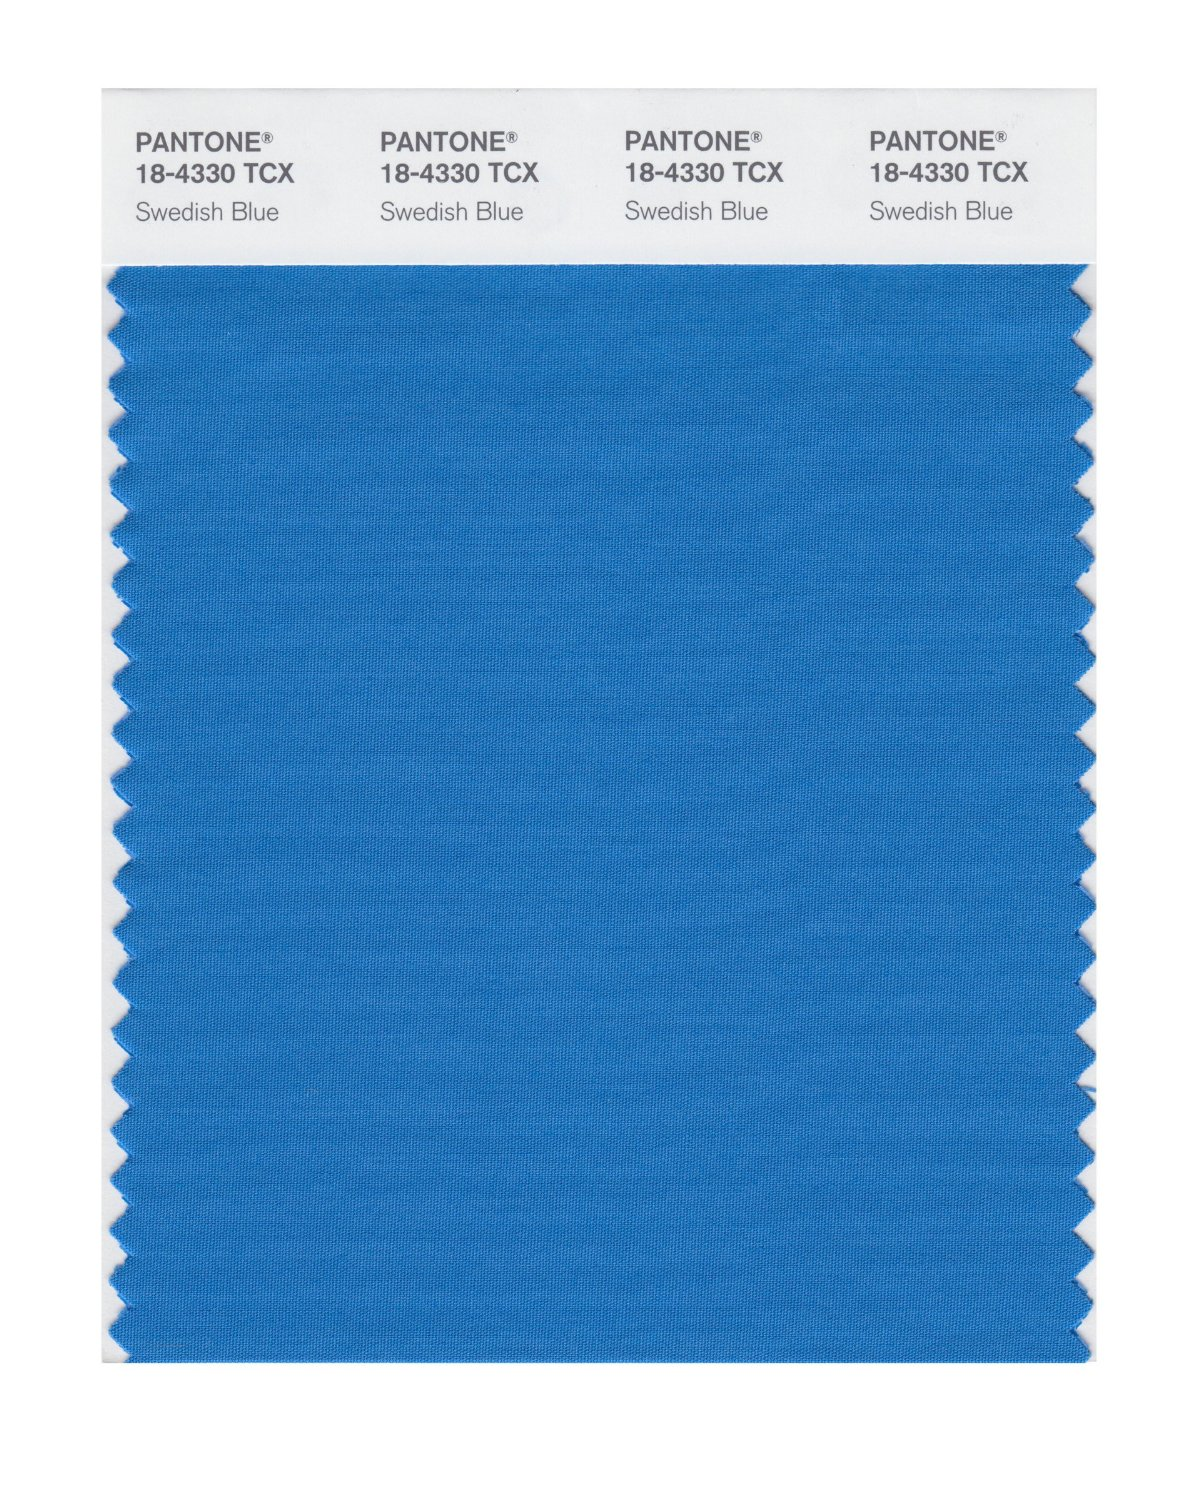 Pantone Smart Swatch 18-4330 Swedish Blue